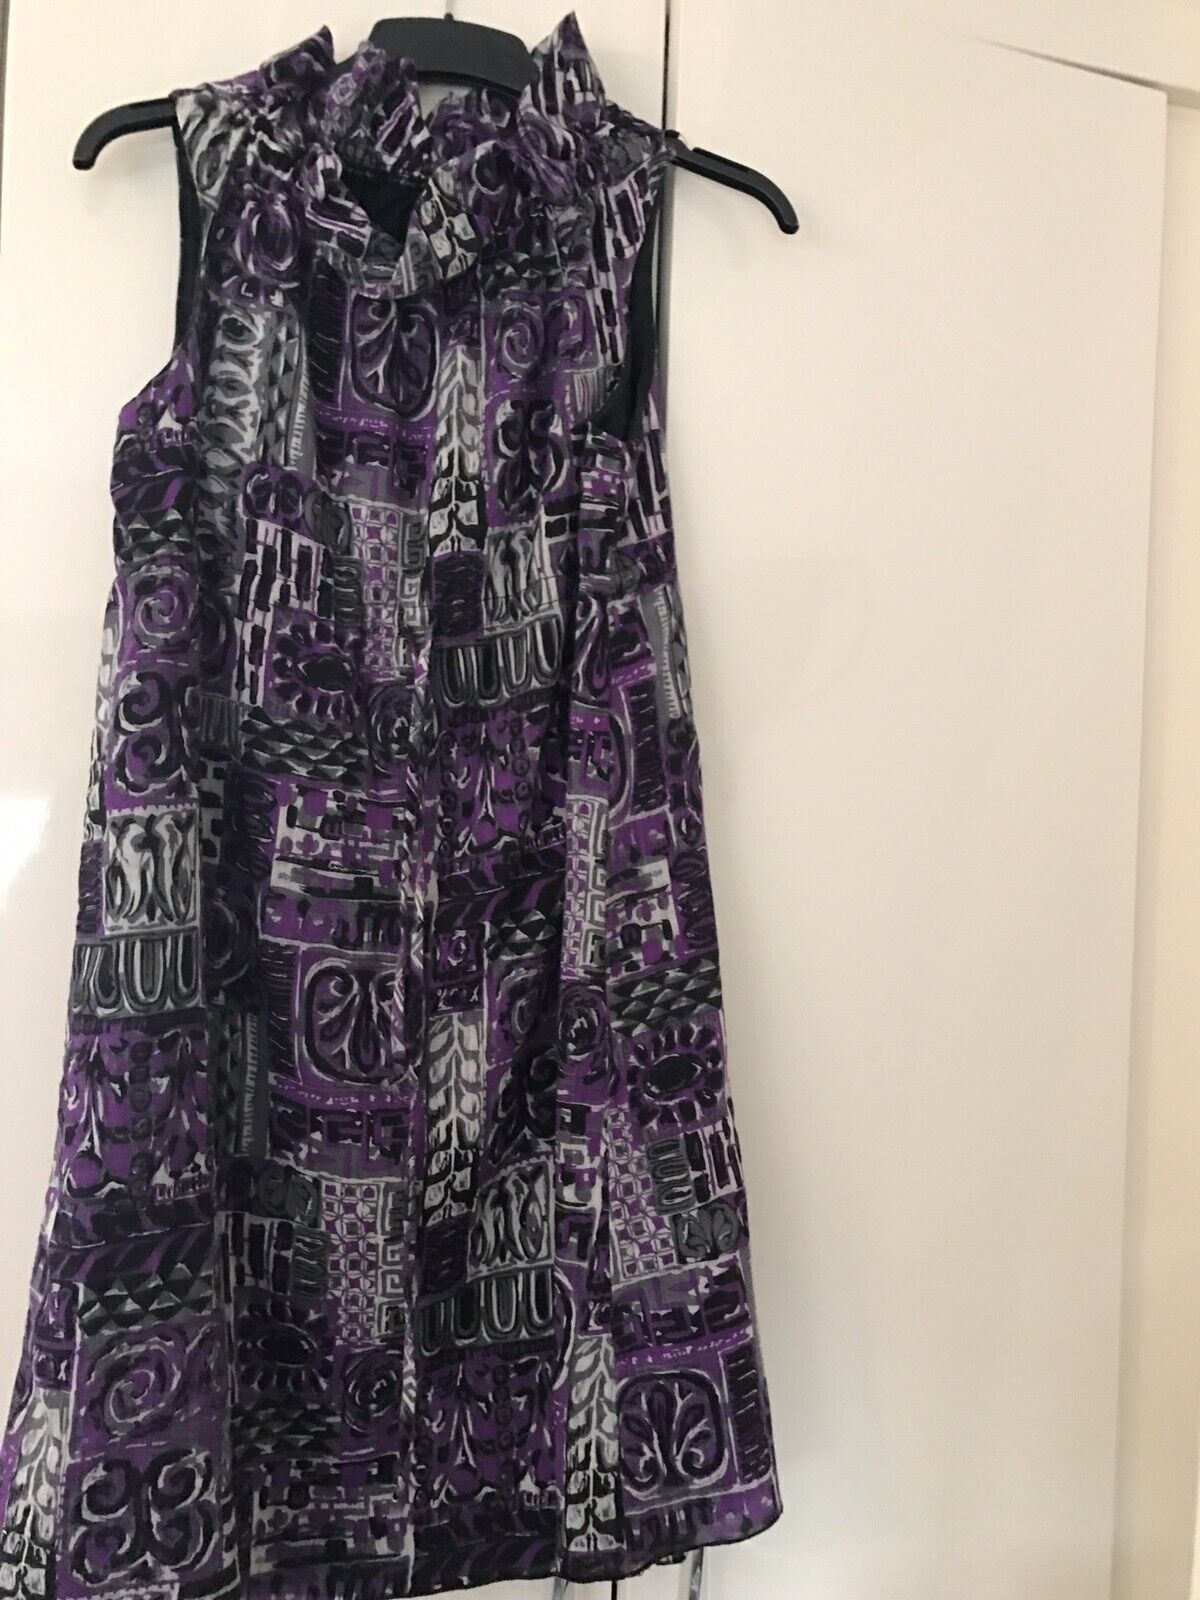 Anna Sui dress lila  schwarz High Neck Knee Length Größe Small 10 - 12